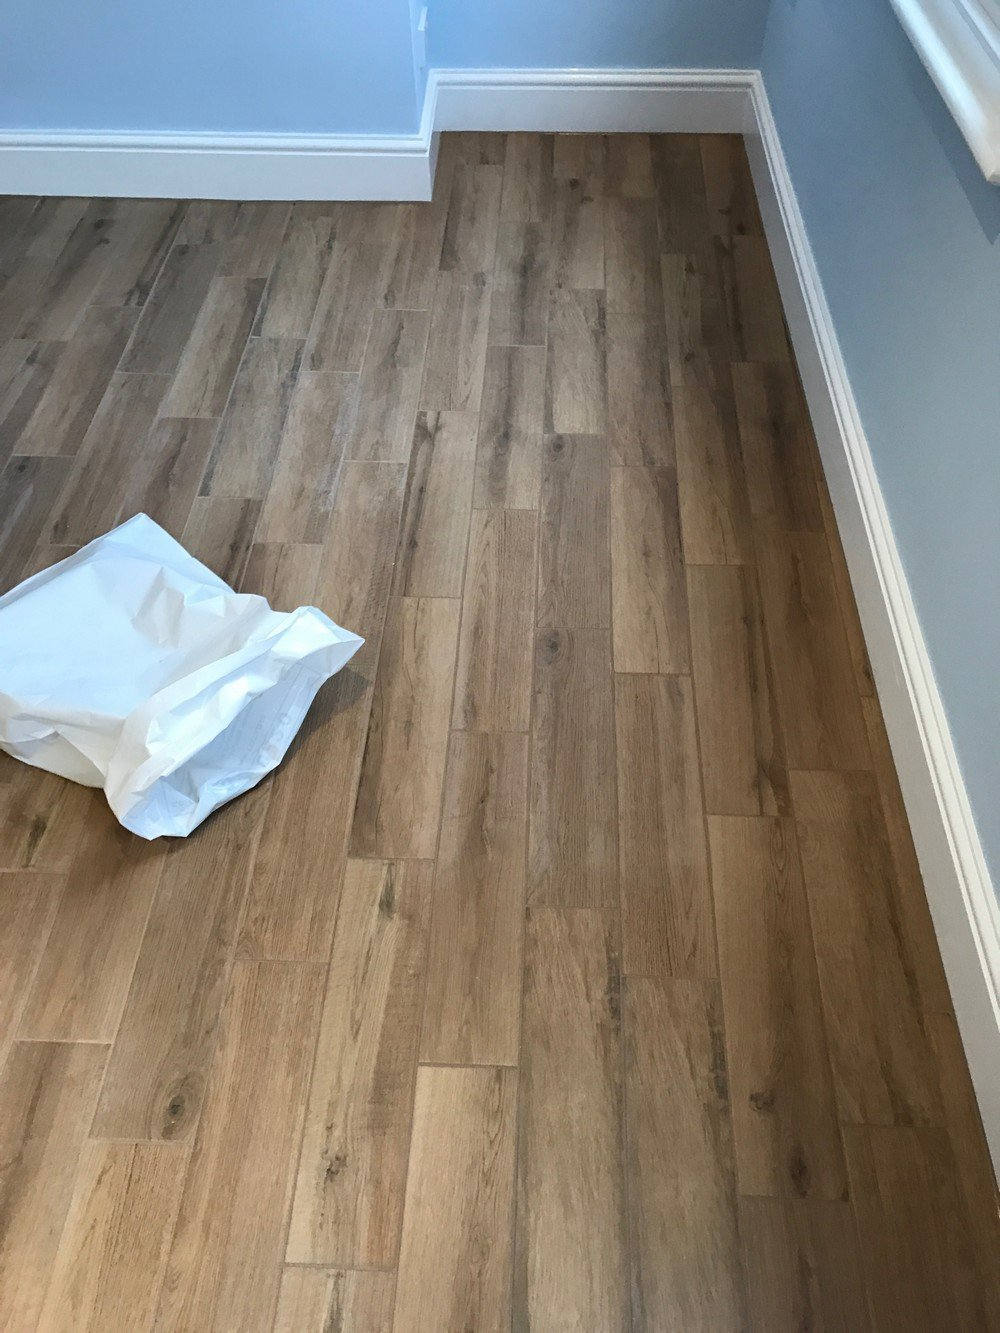 SW1V – Bathrooms, Kitchen, Flooring, Painting Decorating, Steels 9